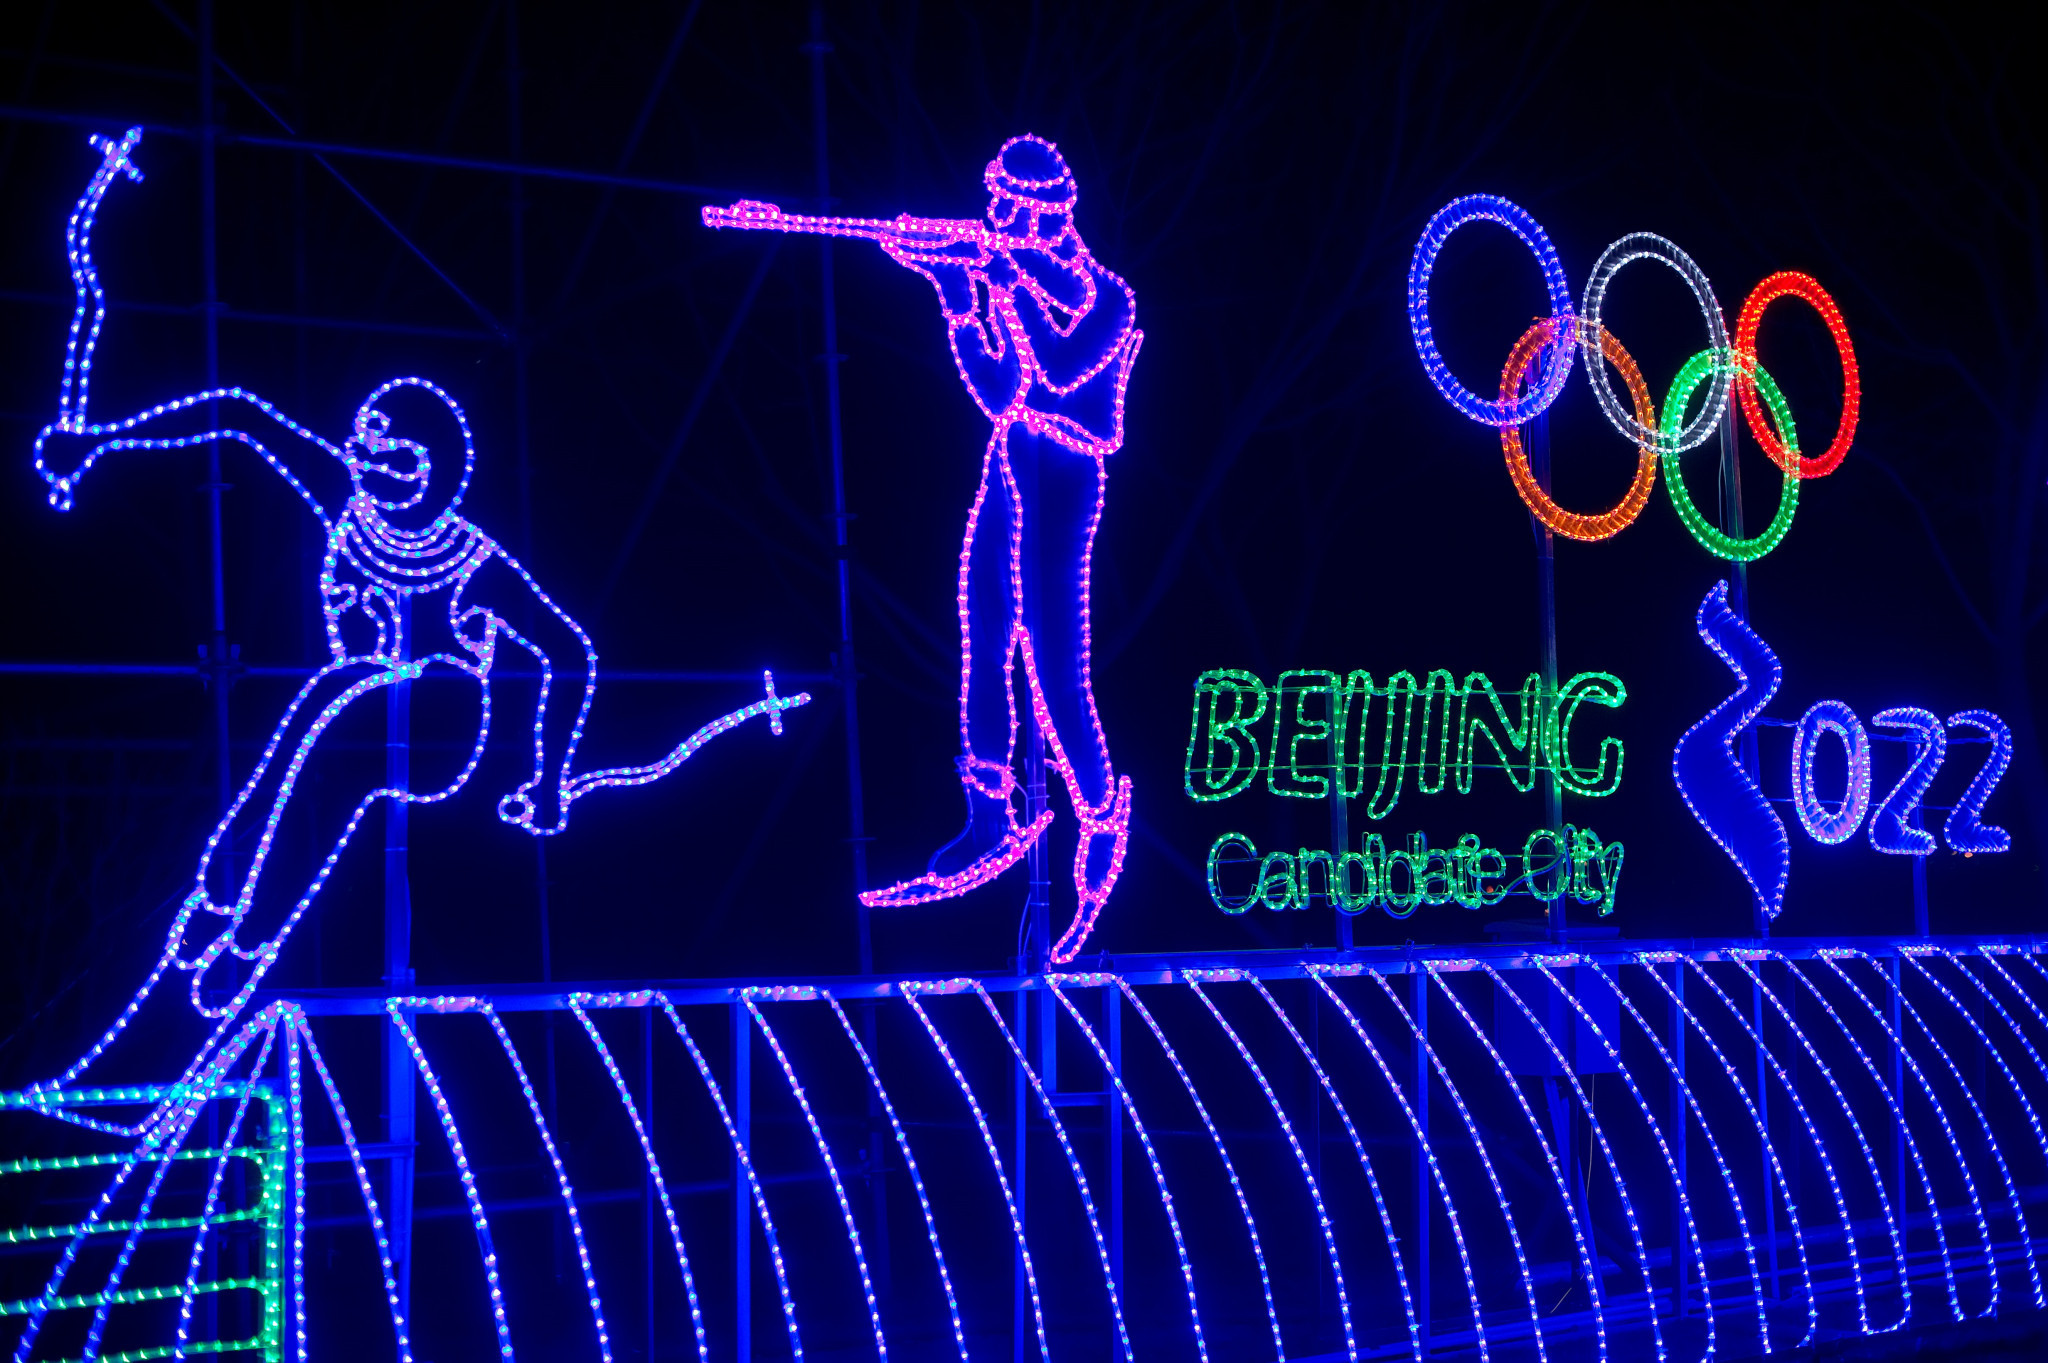 Beijing won the 2022 Winter Olympic bid race ©Getty Images